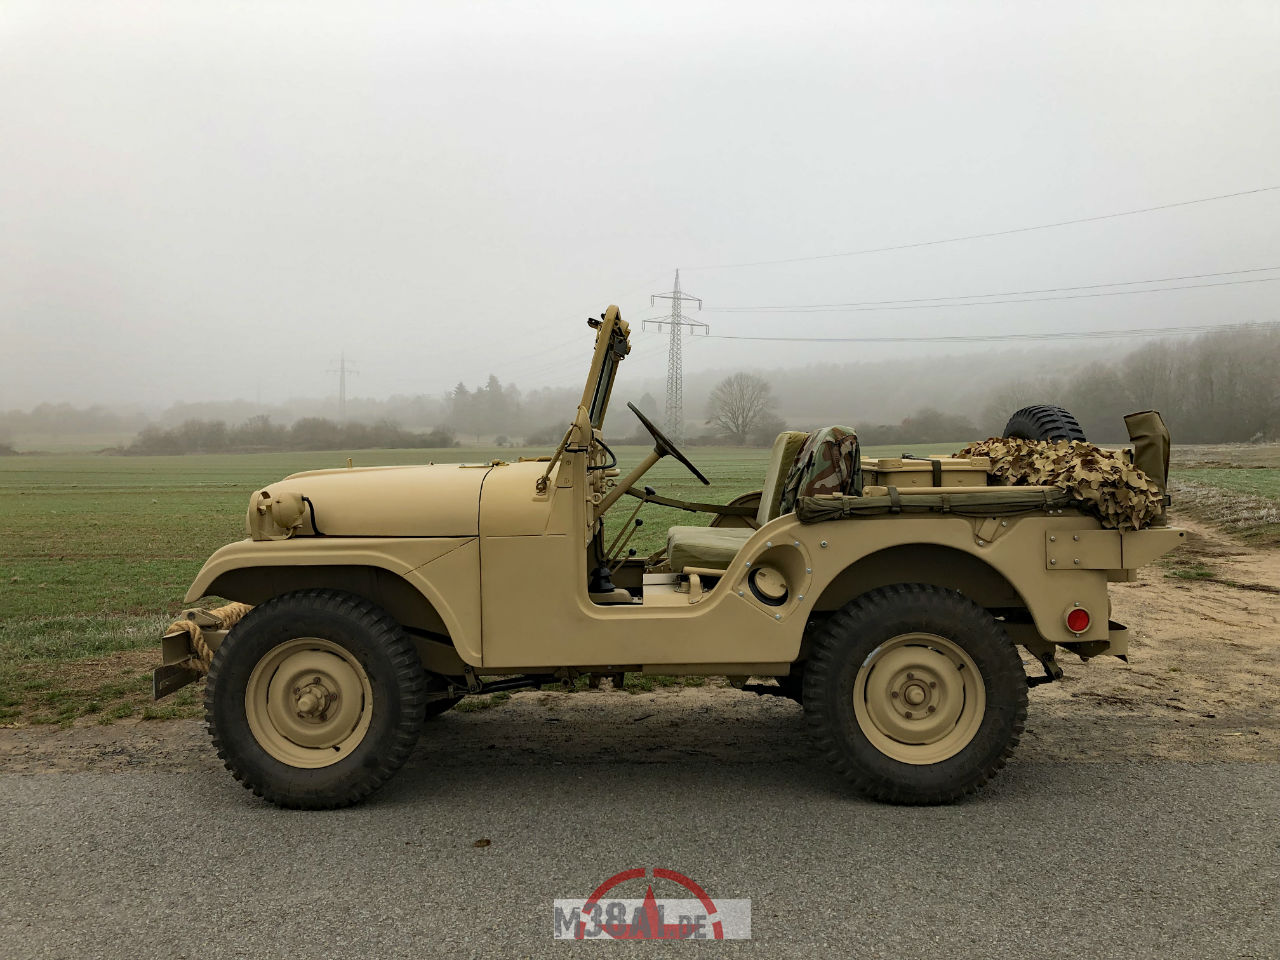 Restoration Of A Willys Jeep M38a1 1 4 Ton 44 1953 Military Find Us On Social Media